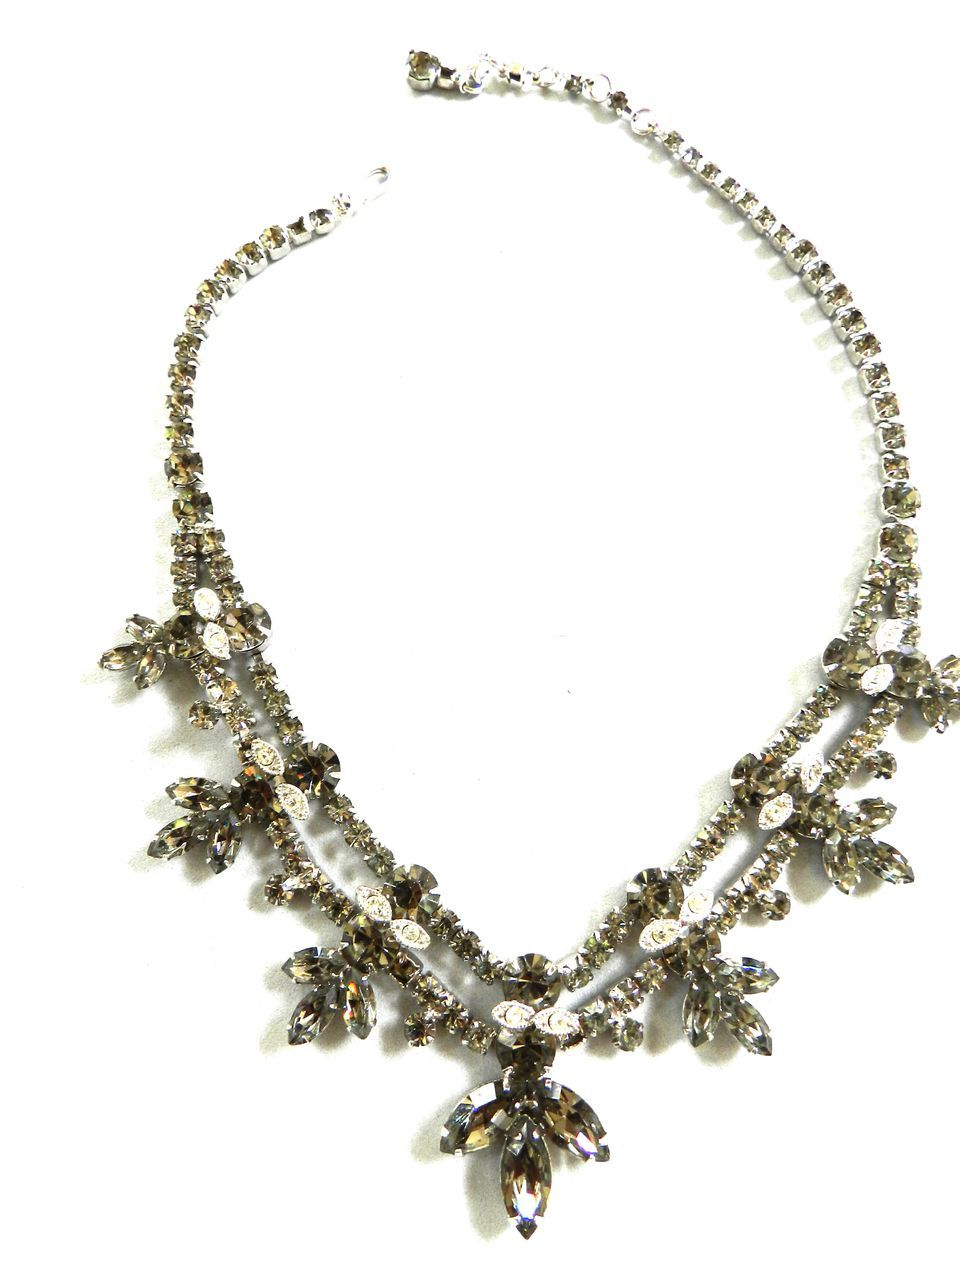 Exquisite Designer Smoke Colored Rhinestone 1950's Necklace